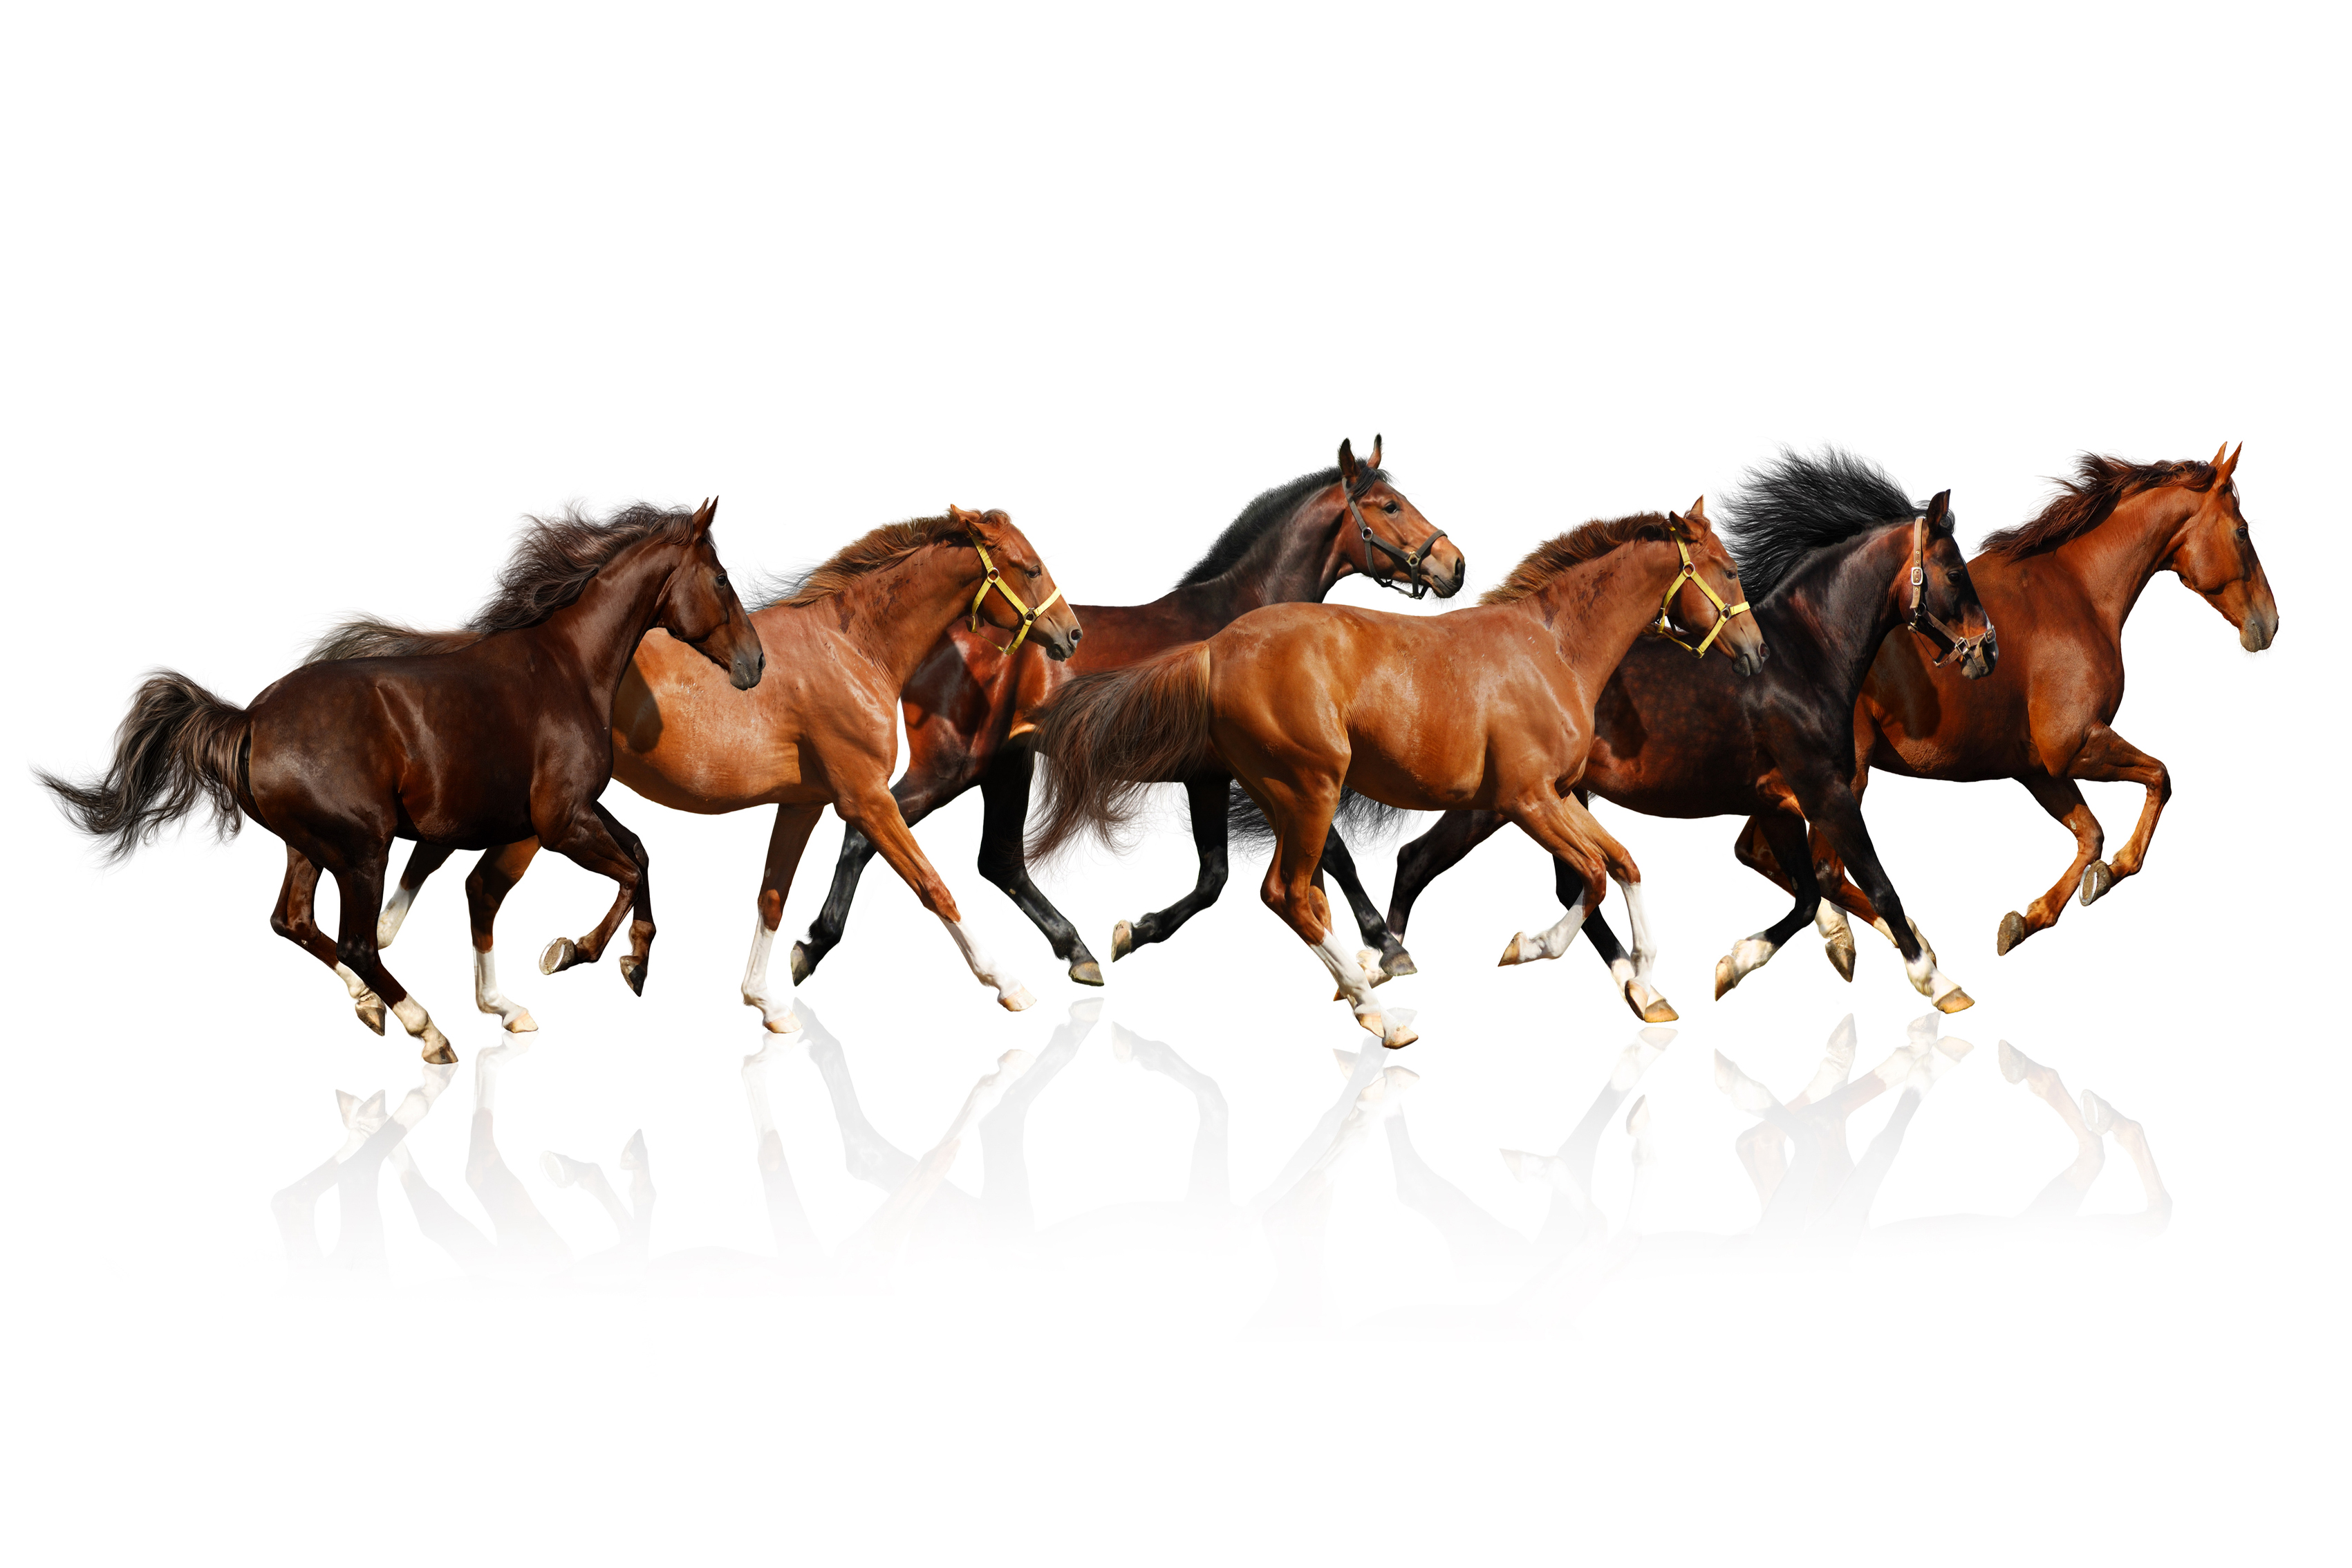 Home Decor Discount Stores Home Decoration Horses Brown White Background The Herd